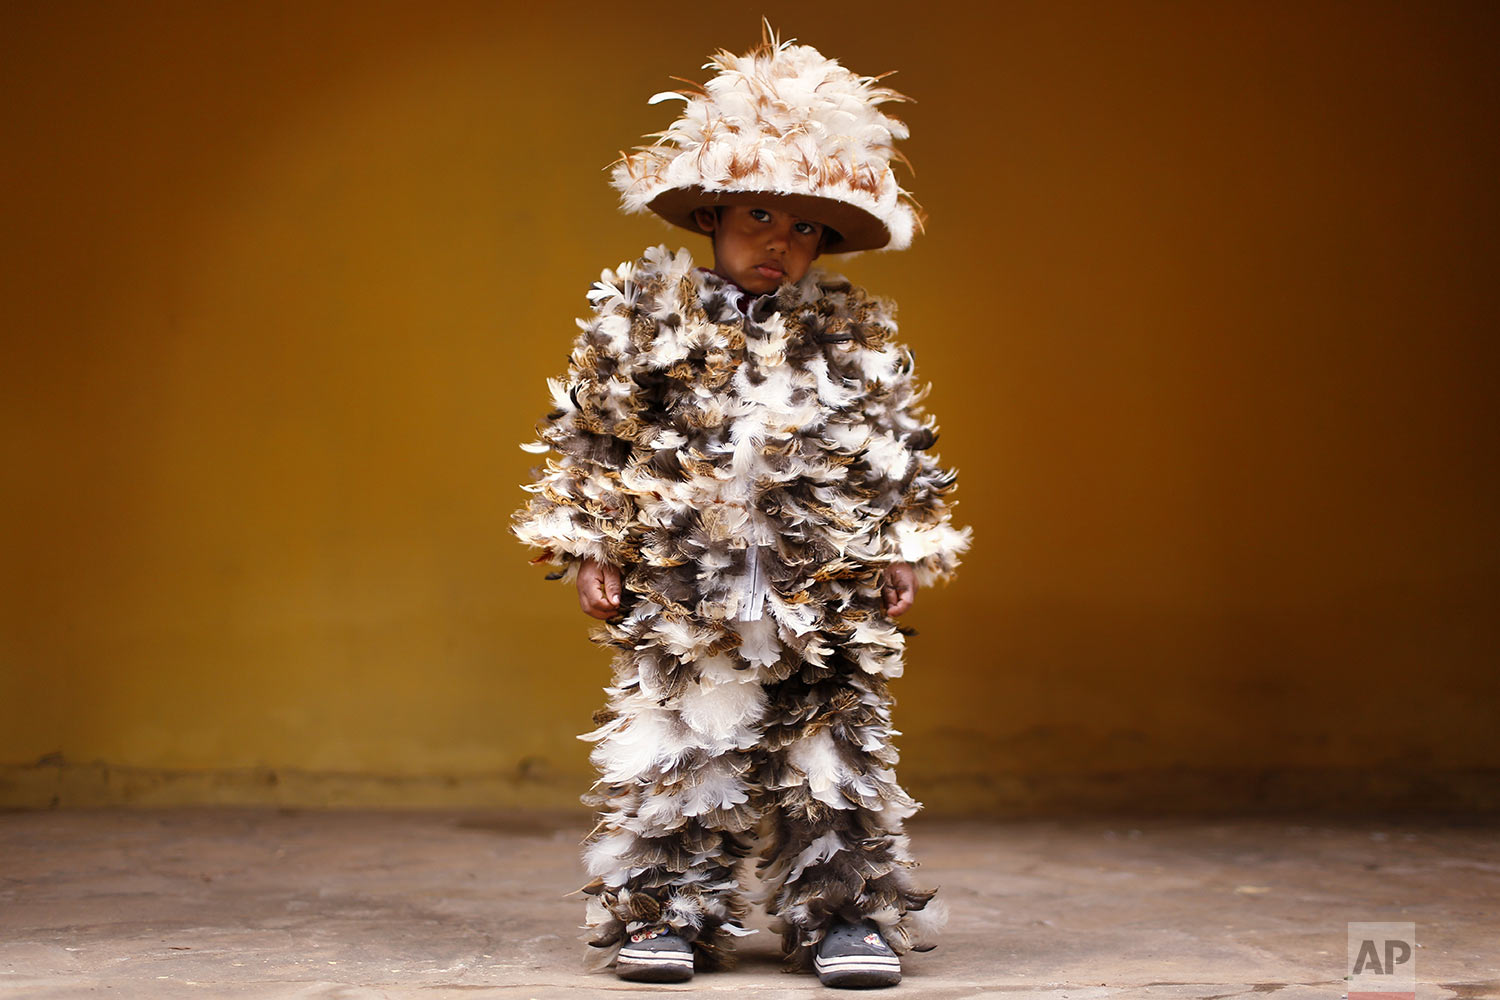 Four-year-old Josia Sebastian Yegros poses for a photo wearing his feathered costume during the feast of St. Francis Solano catholic, in Emboscada, Paraguay, Wednesday, July 24, 2019. Modesto Martínez, a parish priest in the nearby city of San Bernardino, said there was no scholarly explanation for the procession, but birds were believed to have sung to St. Francis Solano as he lay on his deathbed. (AP Photo/Jorge Saenz)